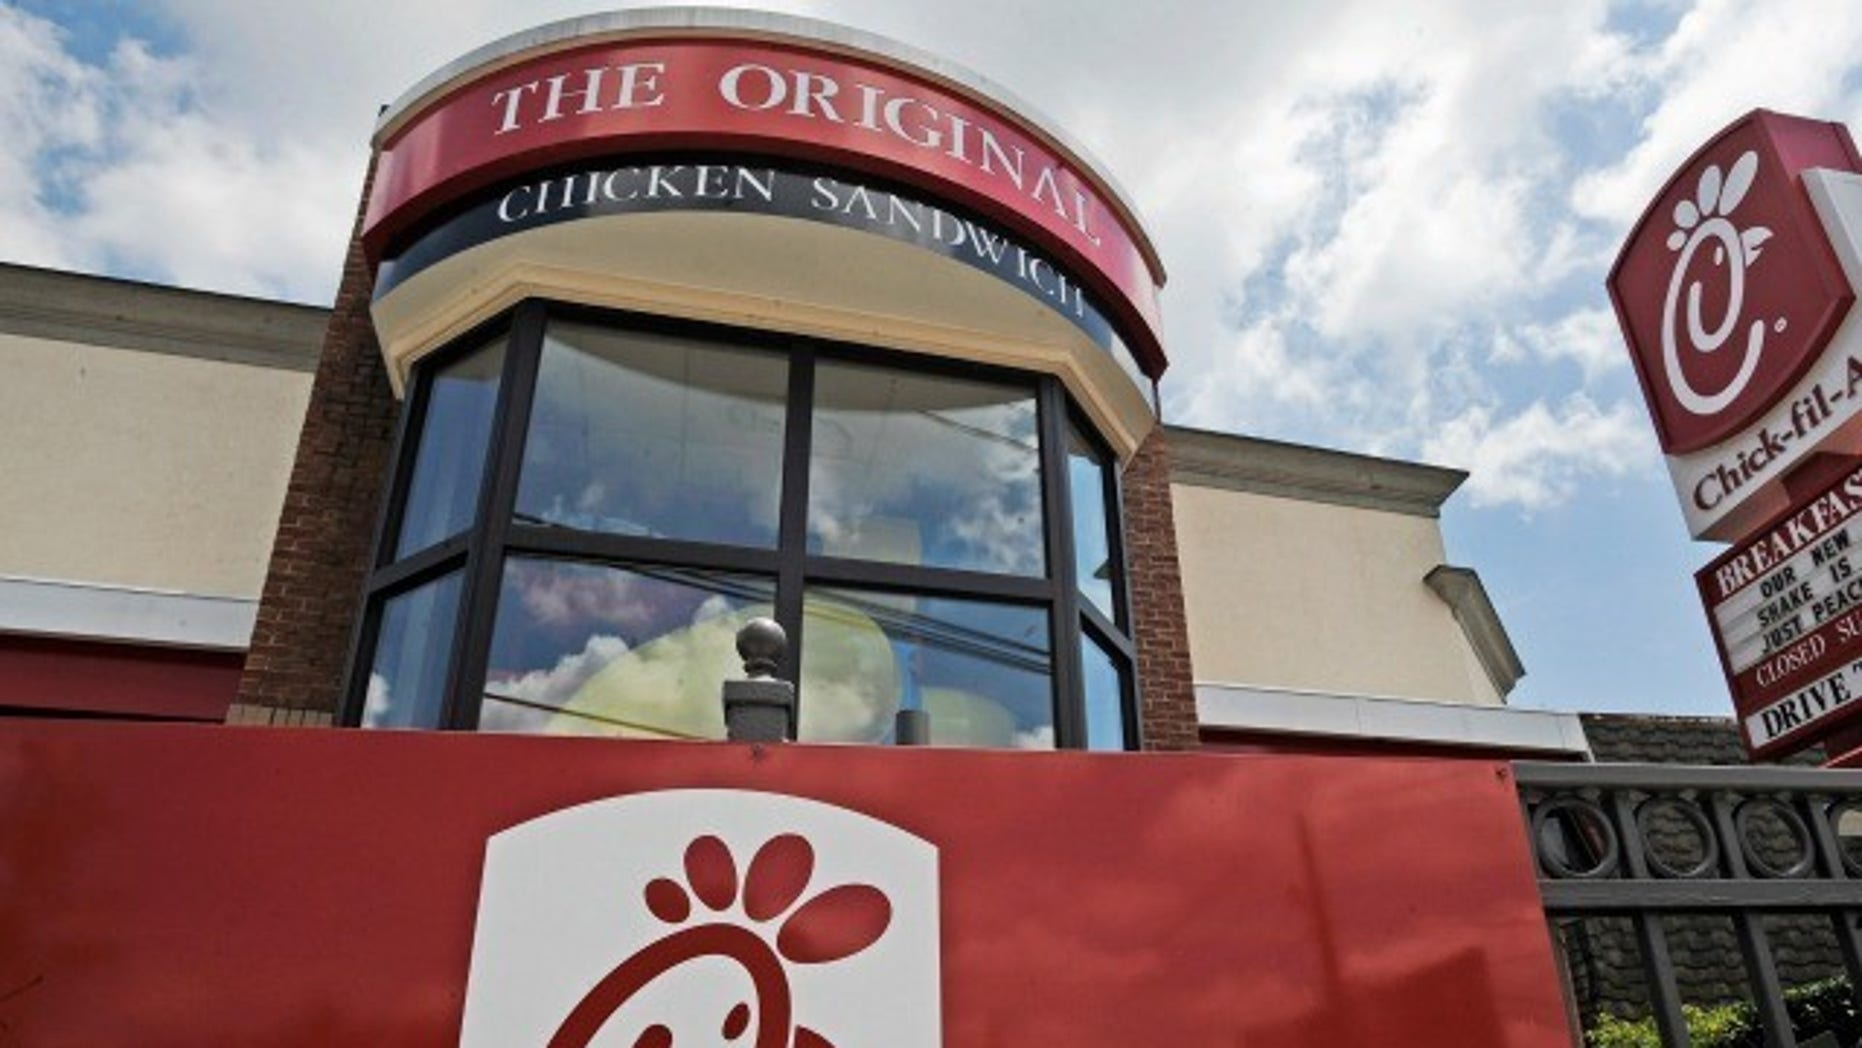 Chick-fil-A is America's highest ratet fast food chain.